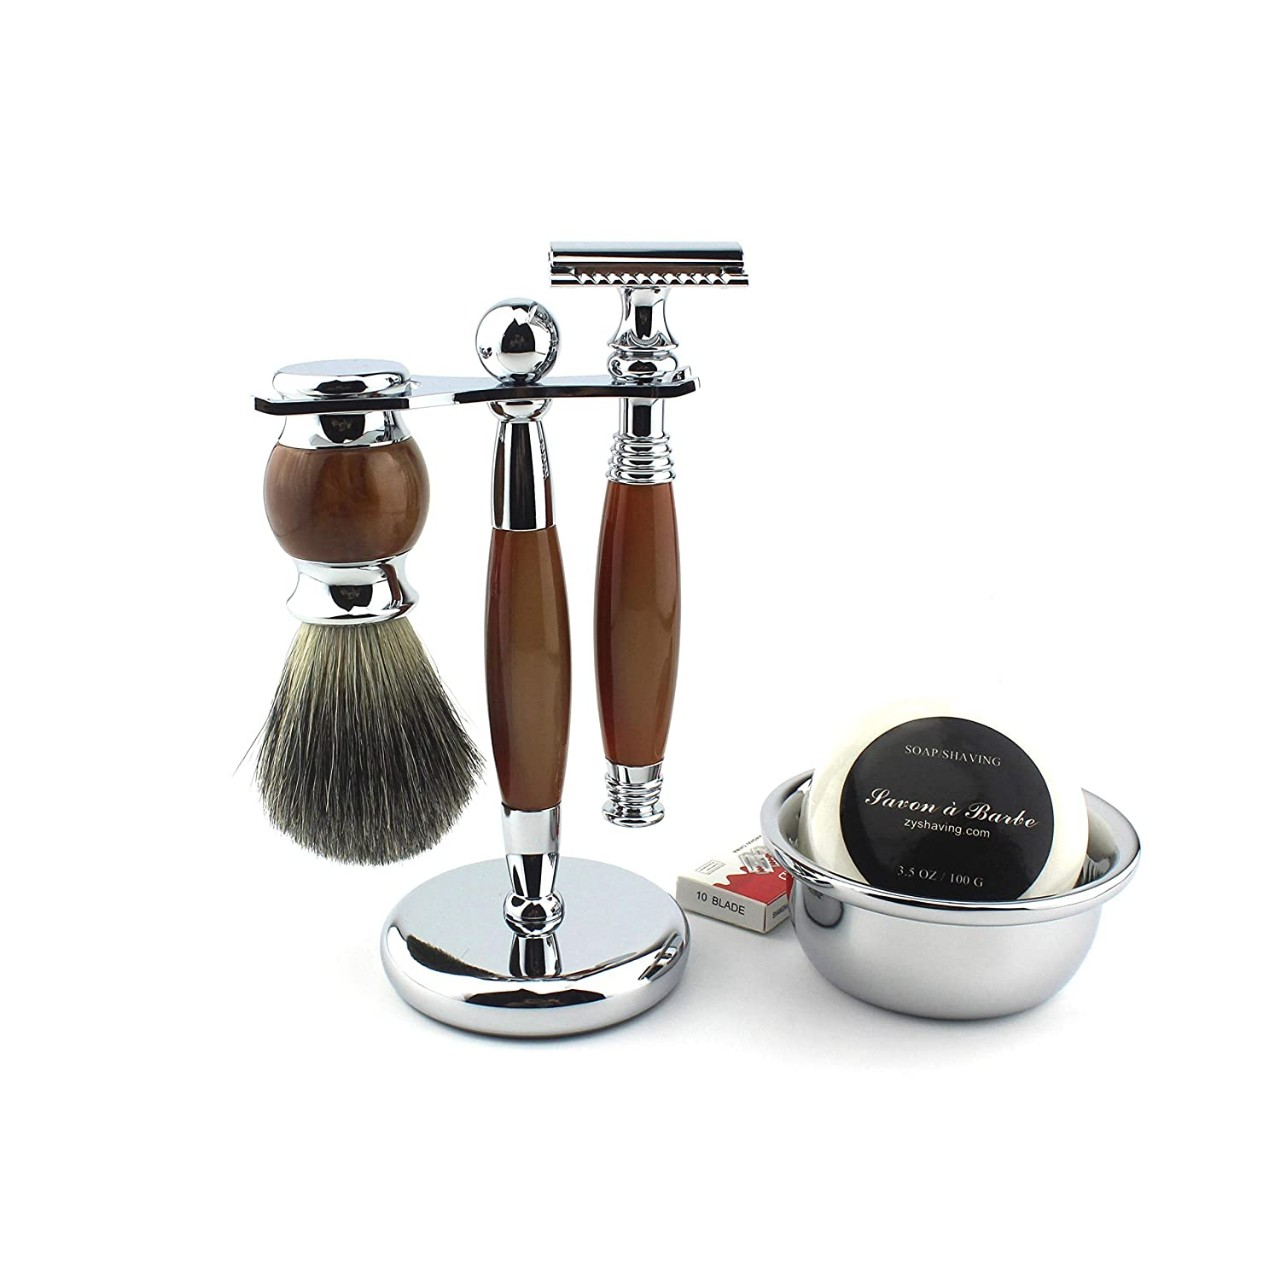 Shaving Gift Kit for Men,Yunlep Luxury Grooming Wet Shaving Set Including Razor with 10 Replacement